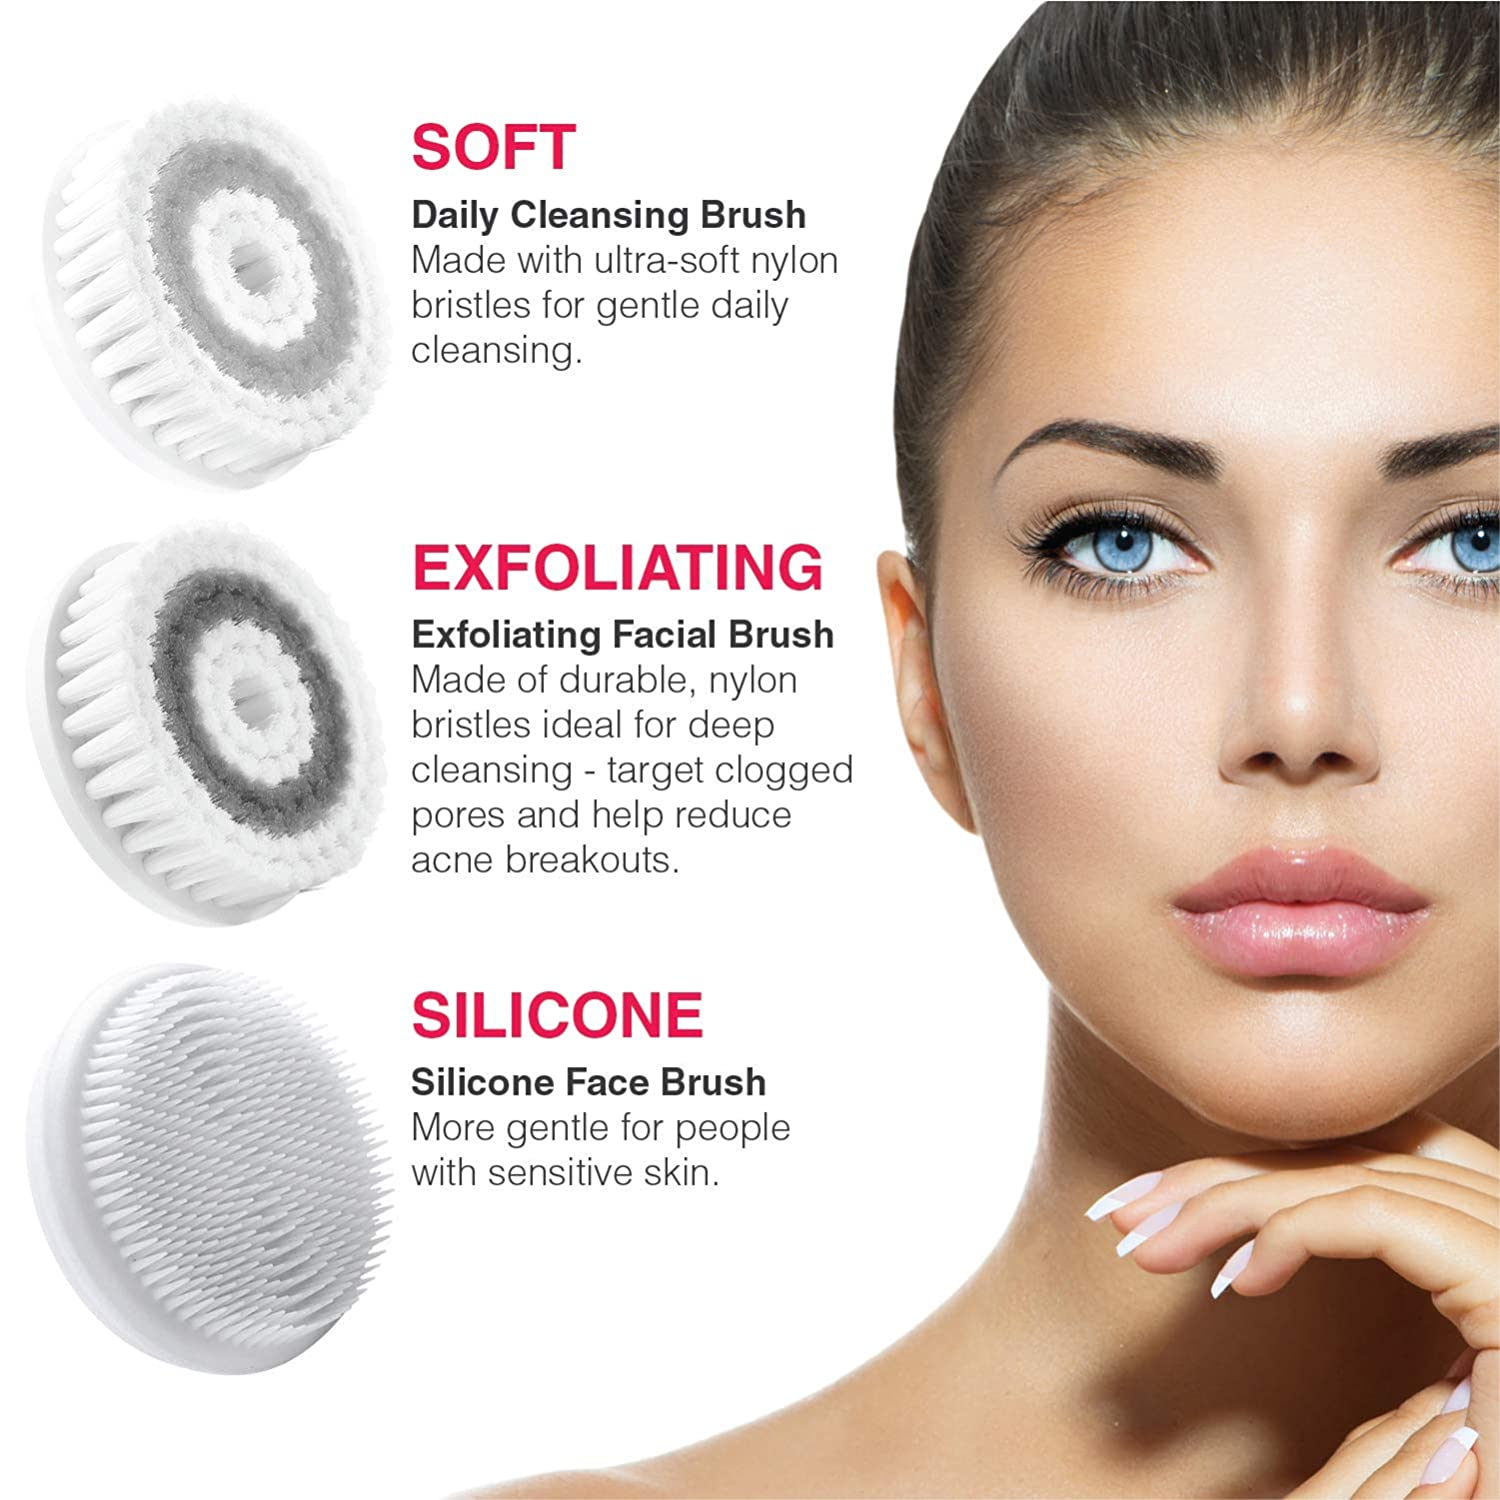 LIVINGPRO Waterproof Facial Cleansing Spin Brush Set with 3 Exfoliating Brush Heads Travel Case- Dual Speed Modes for Deep Cleansing, Gentle Exfoliating Removing Blackhead